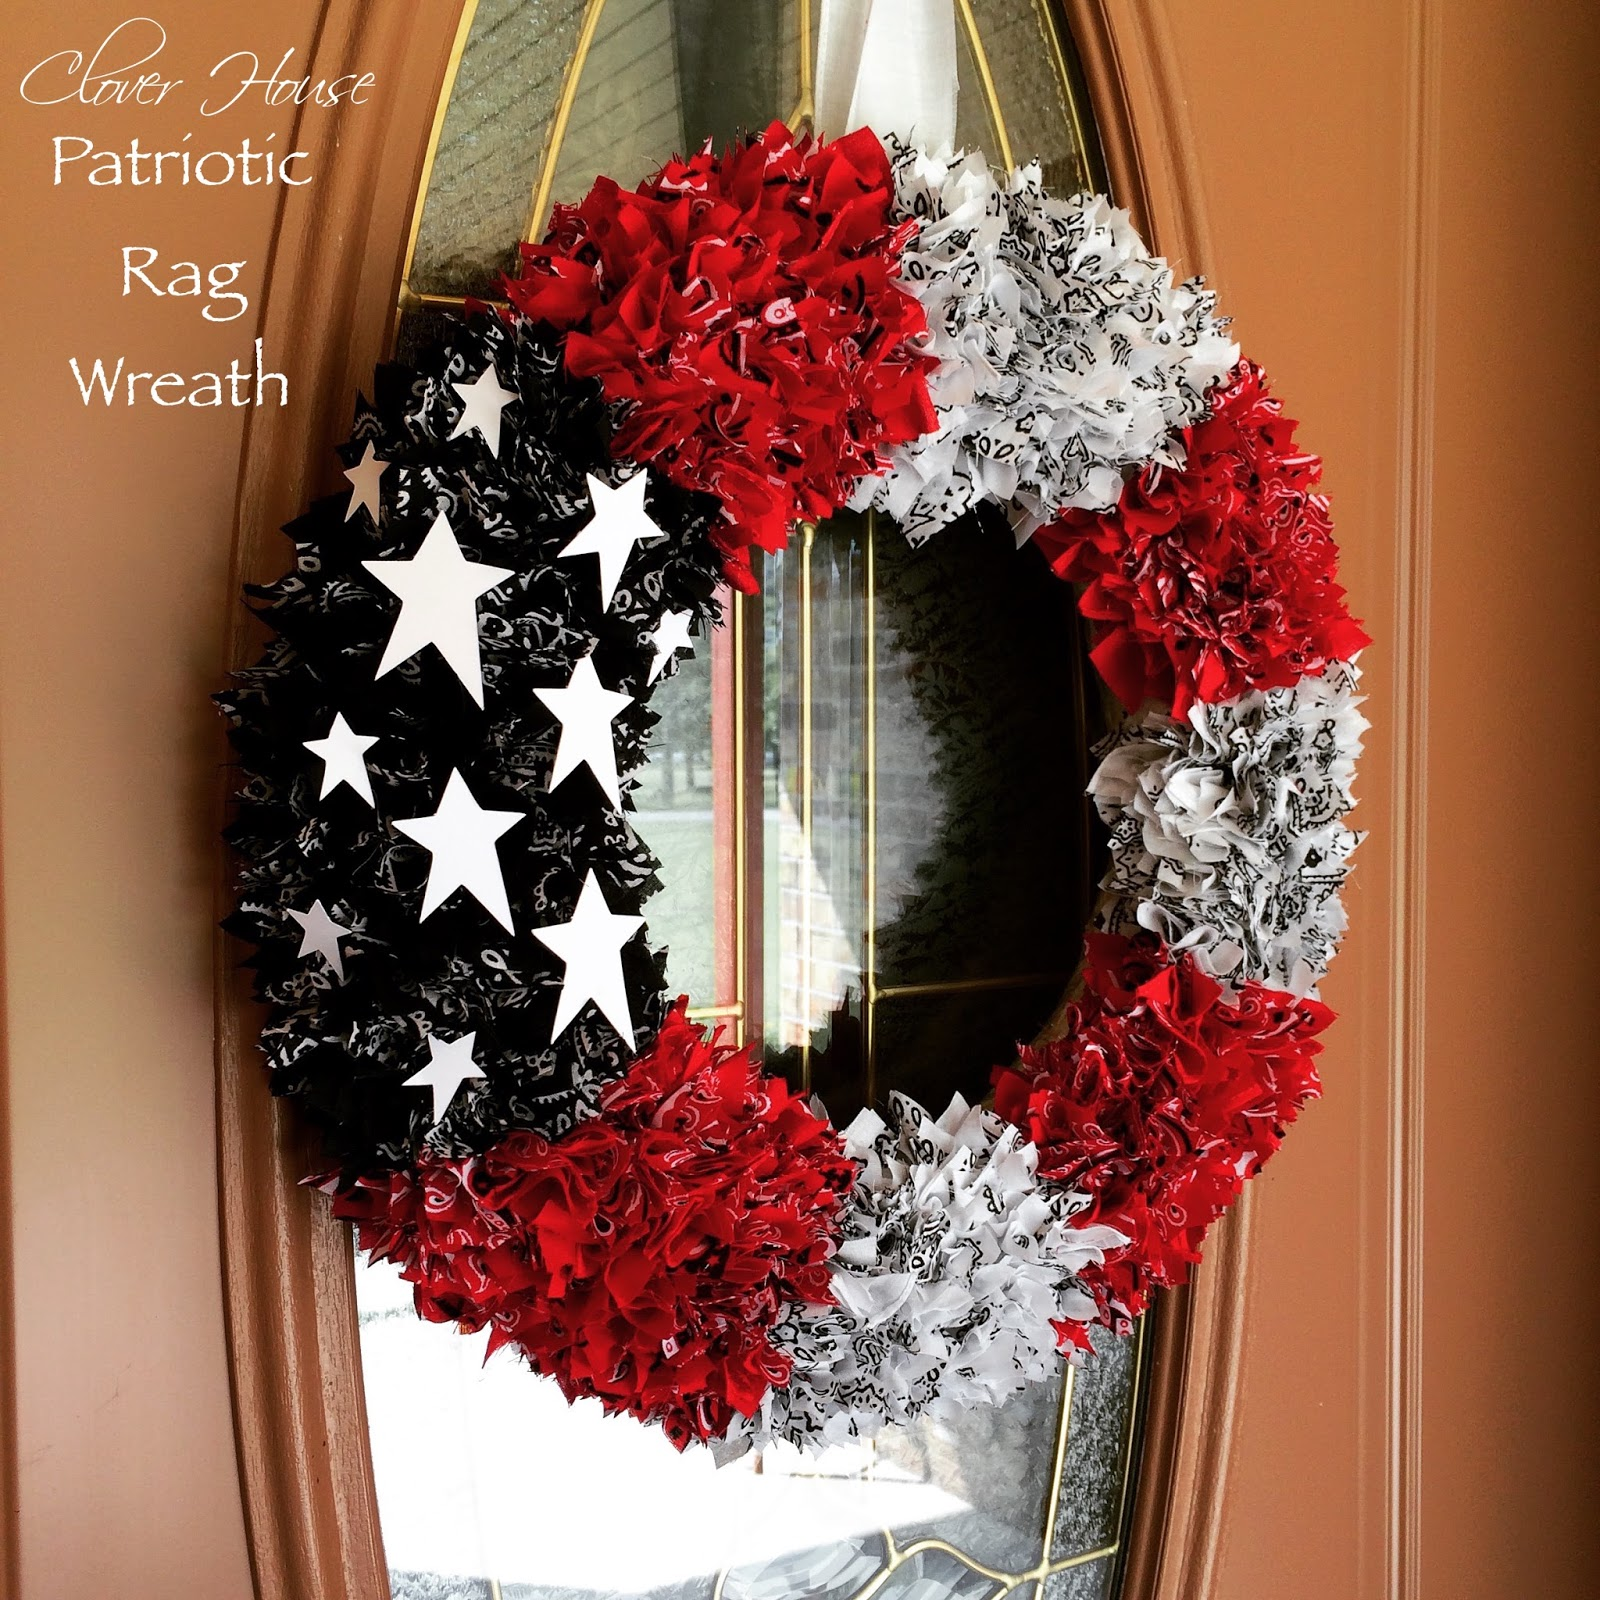 Diy Wreaths For Front Door: Clover House: How To Make A Patriotic Rag Wreath